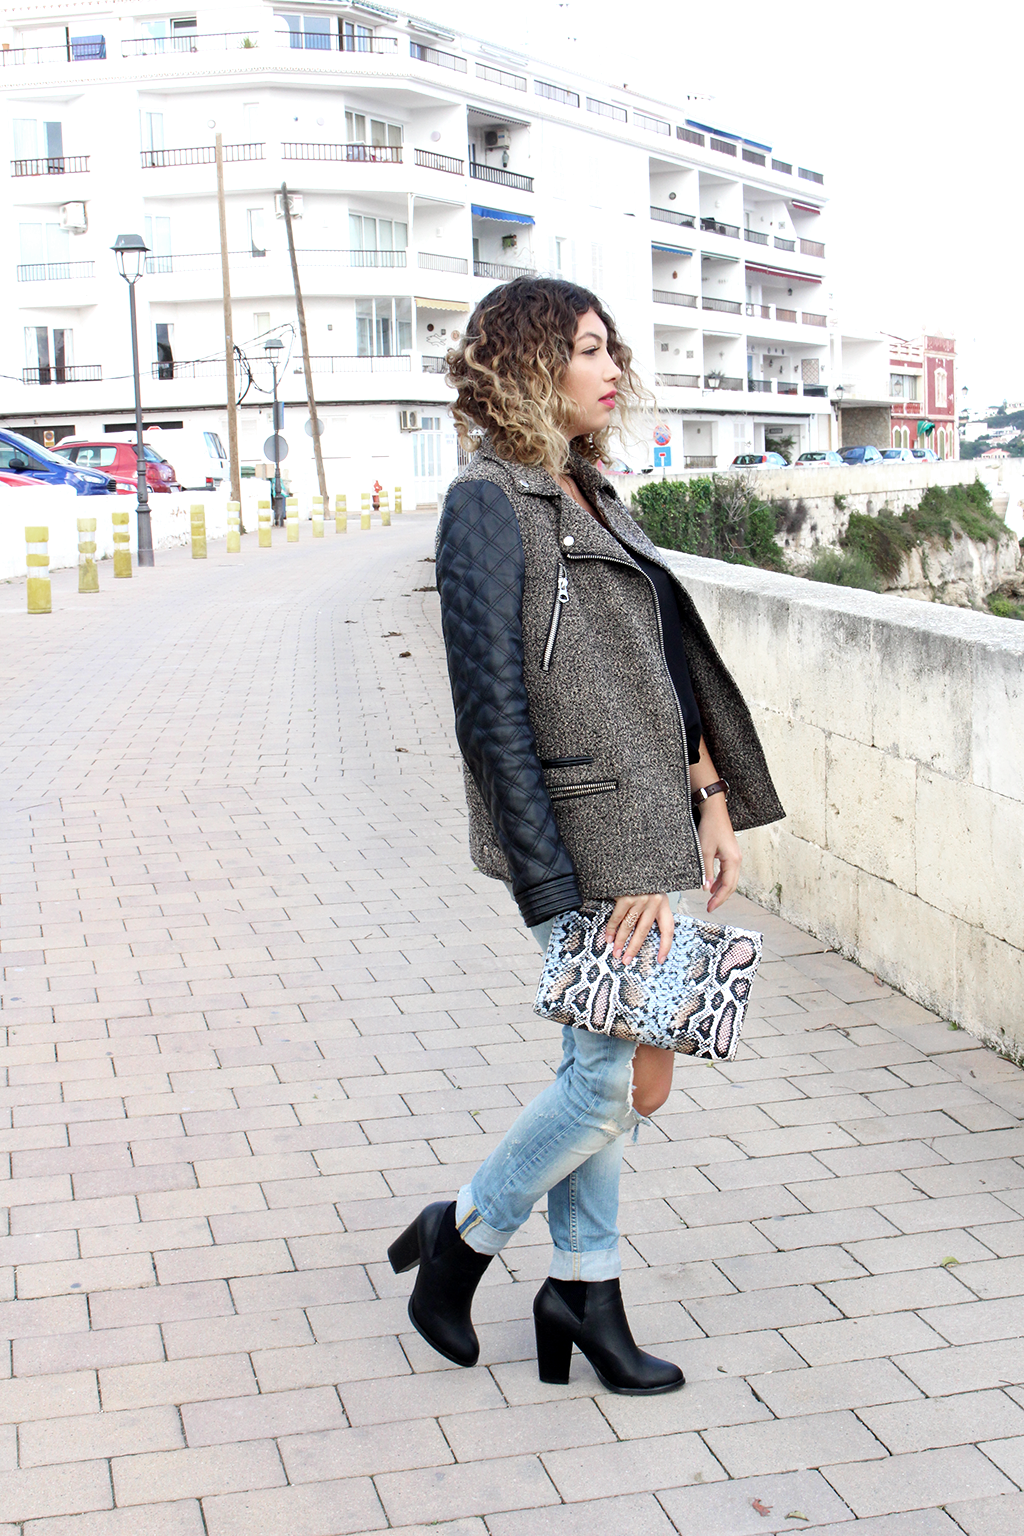 jeans-mode-look-style-inspiration-fashion-blog-blogueuse-destroy-conseil